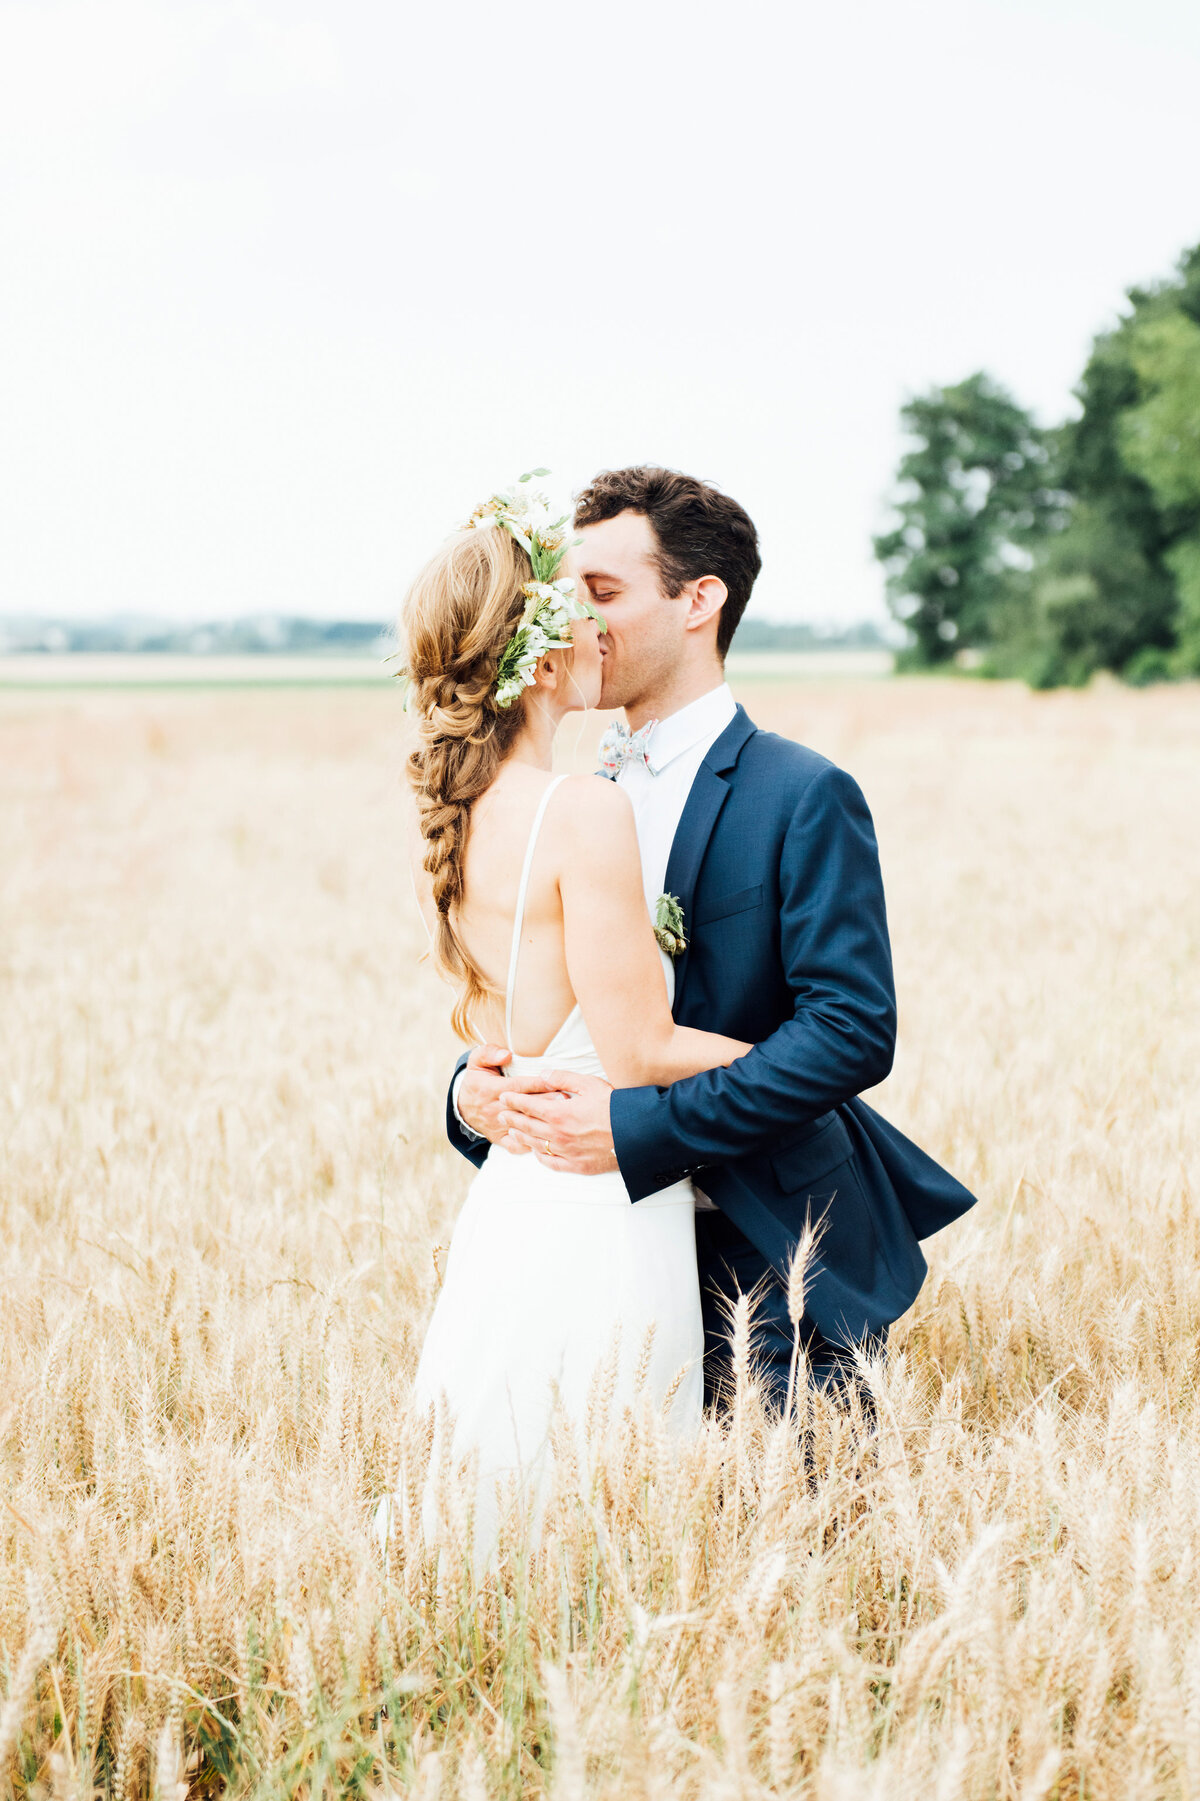 Trine_Juel_hair_and_makeupartist_wedding_franceWedding_FR_445